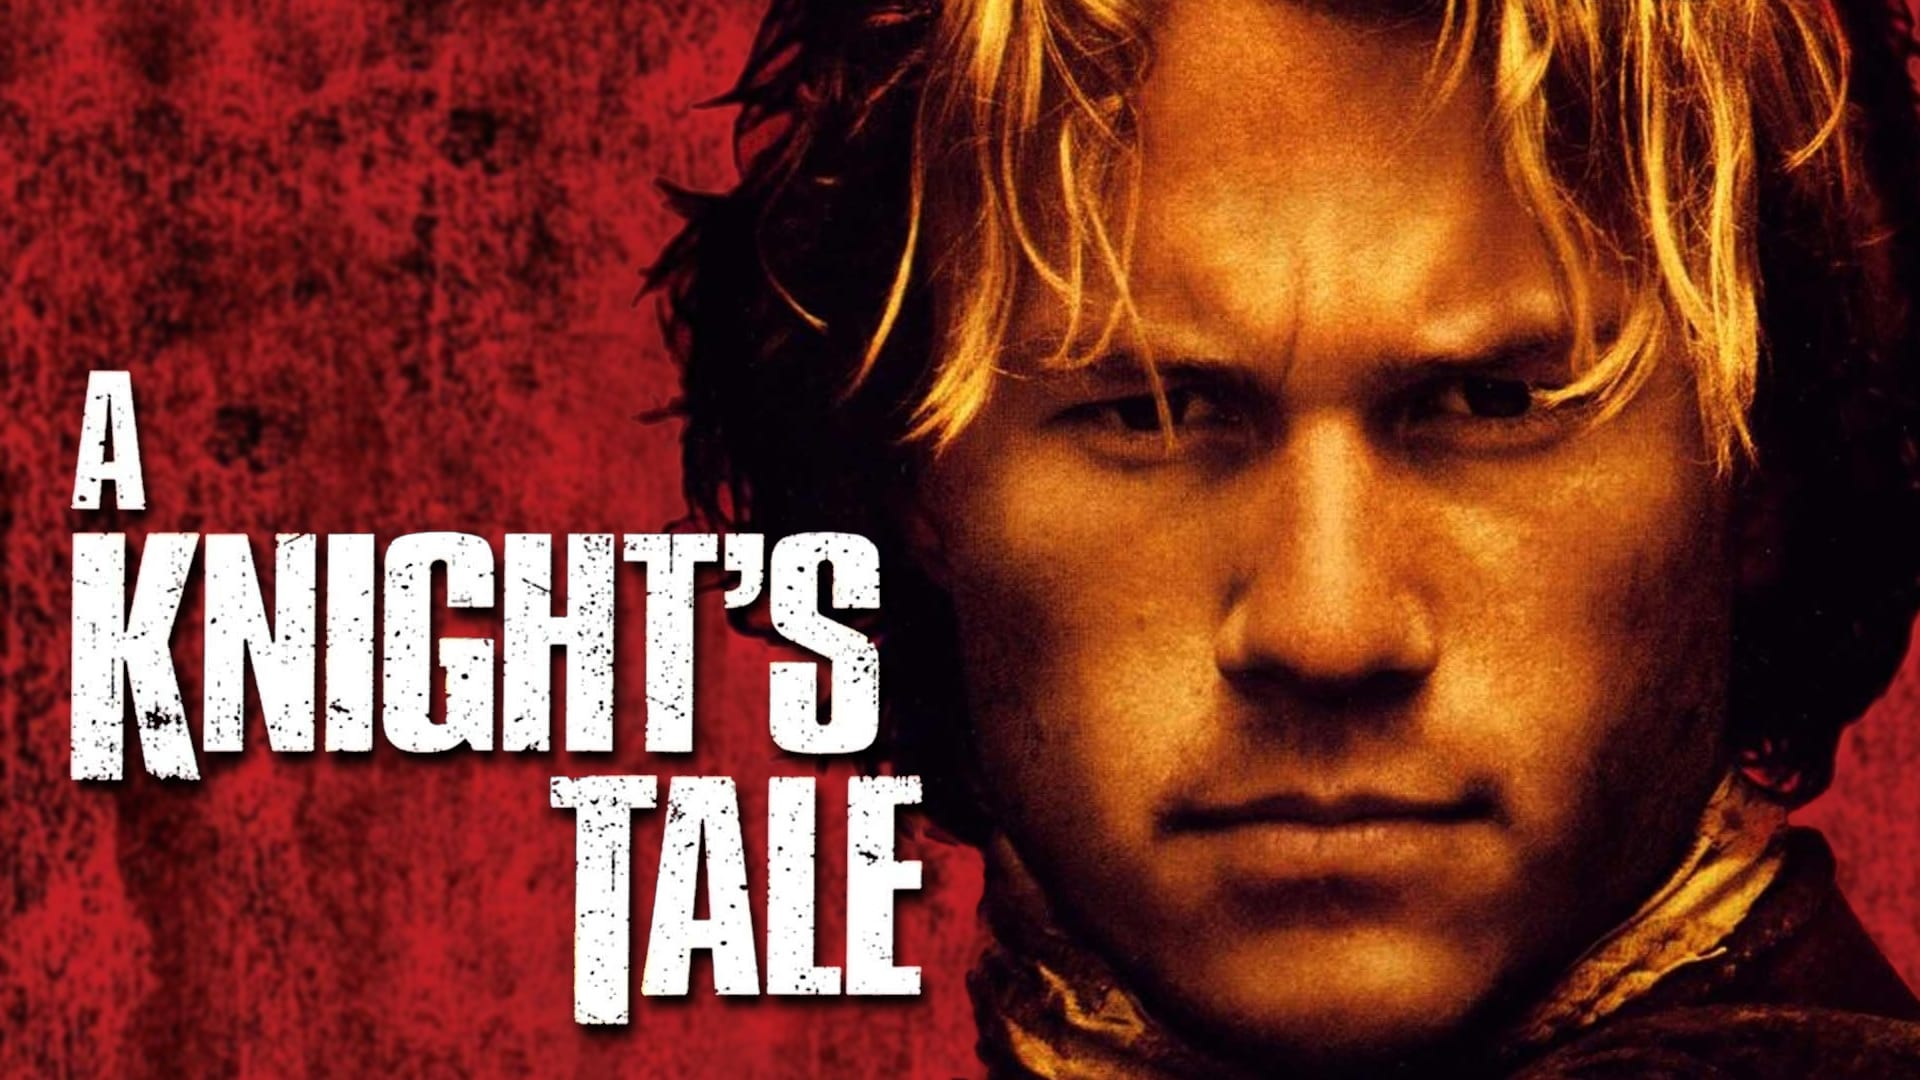 A Knight's Tale (2001) - The Movie